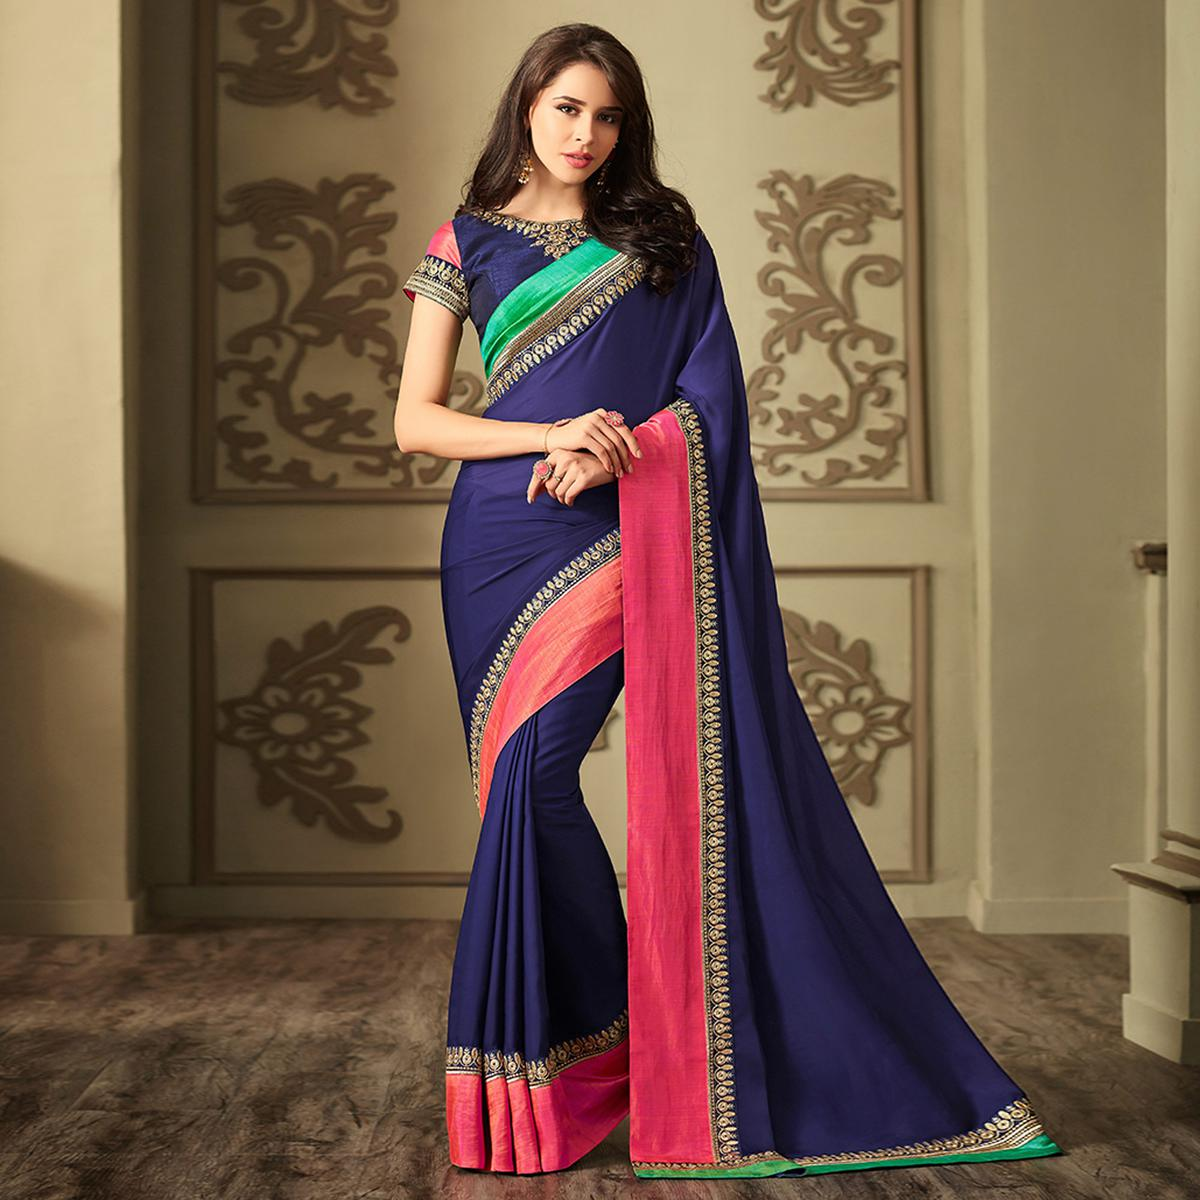 96d183d1c4 Buy Amazing Navy Blue Colored Party Wear Embroidered Rangoli Silk Saree for  women's online India, Best Prices, Reviews - Peachmode